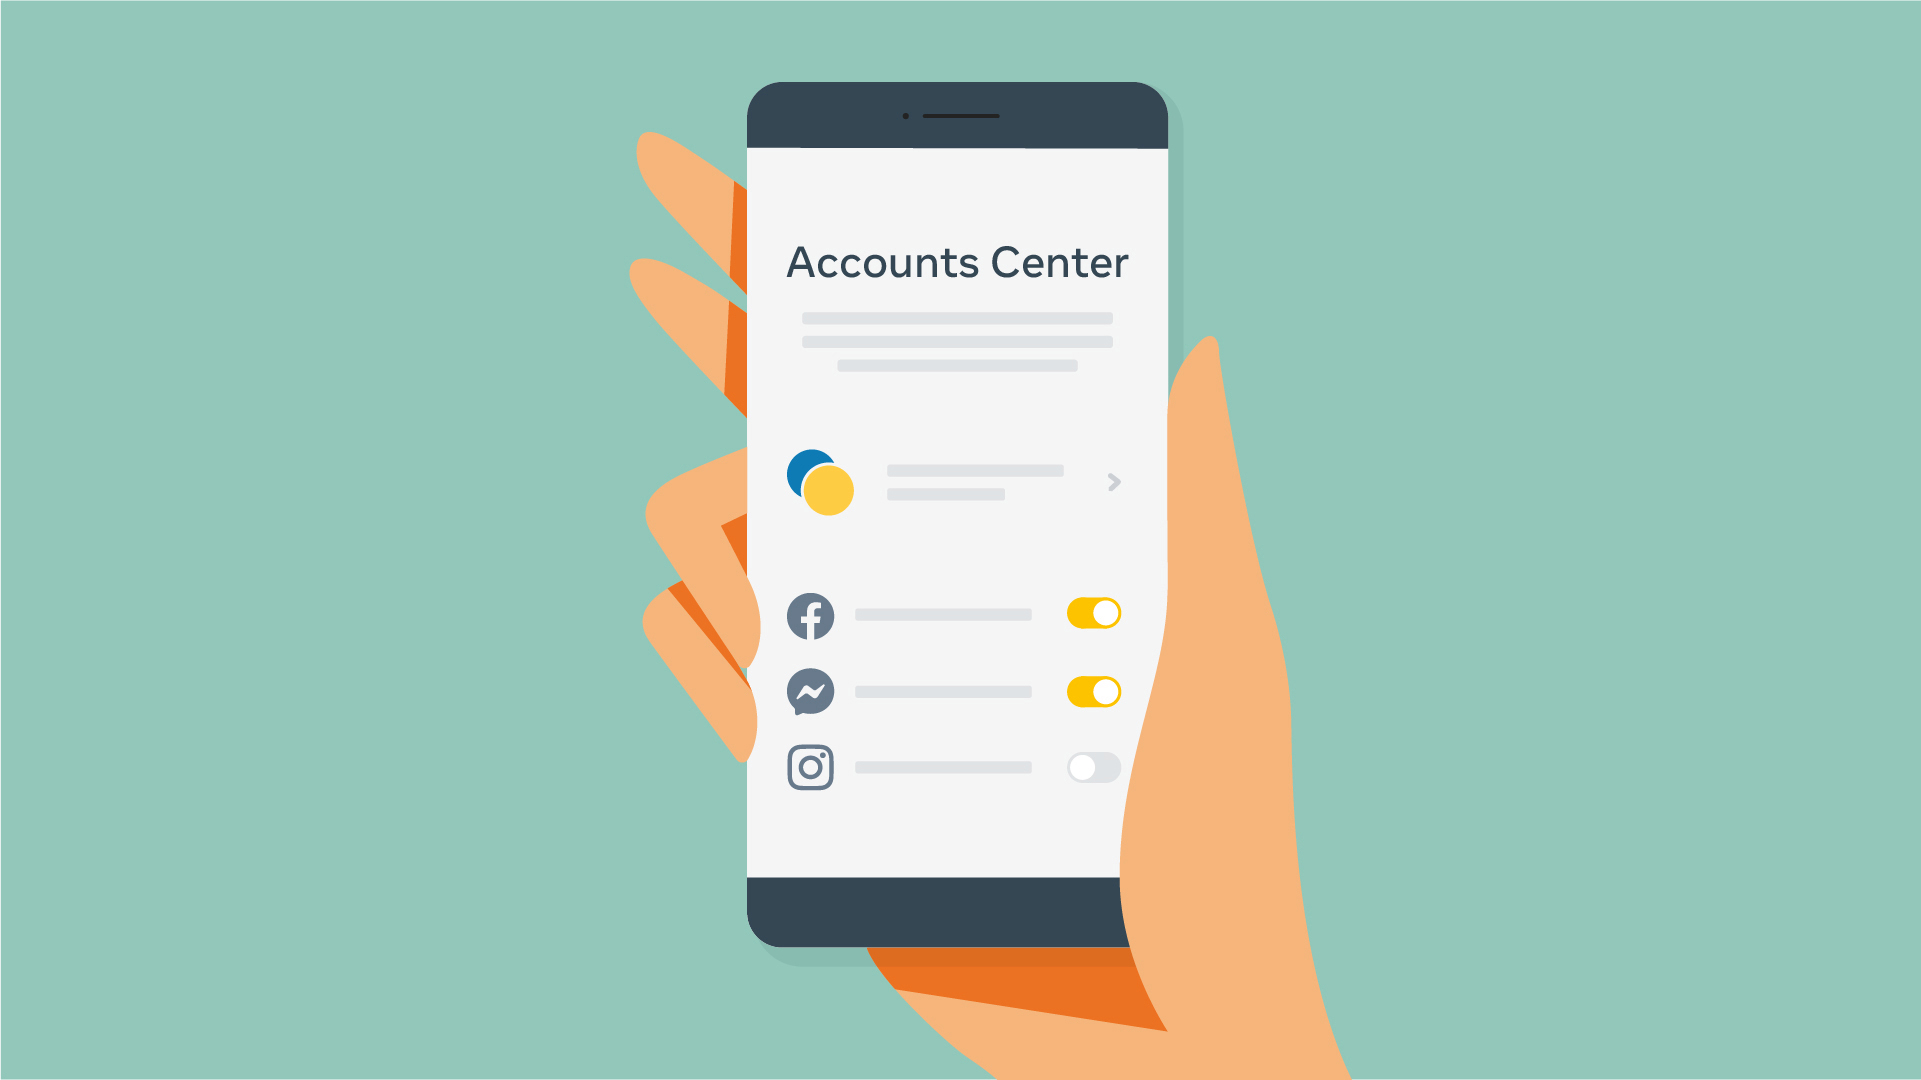 Accounts Center: An Easier Way to Manage Features That Work Across Our Apps  - About Facebook